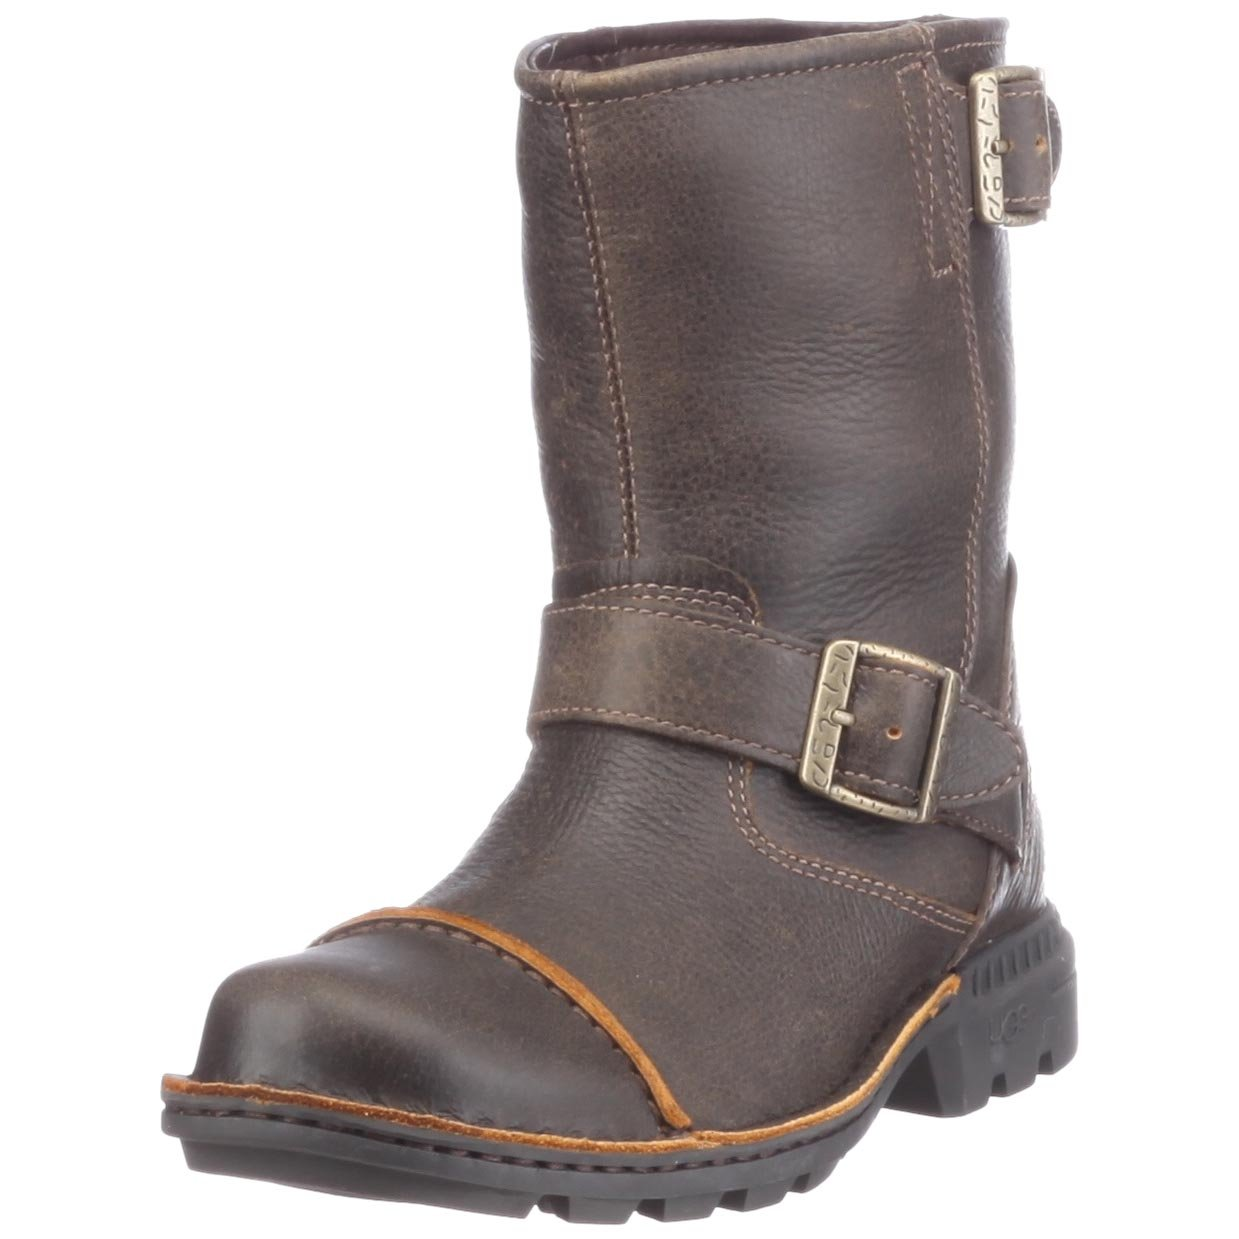 03d6799ec01 Amazon.com | UGG Men's Rockville II, Dune, US 8 M | Boots